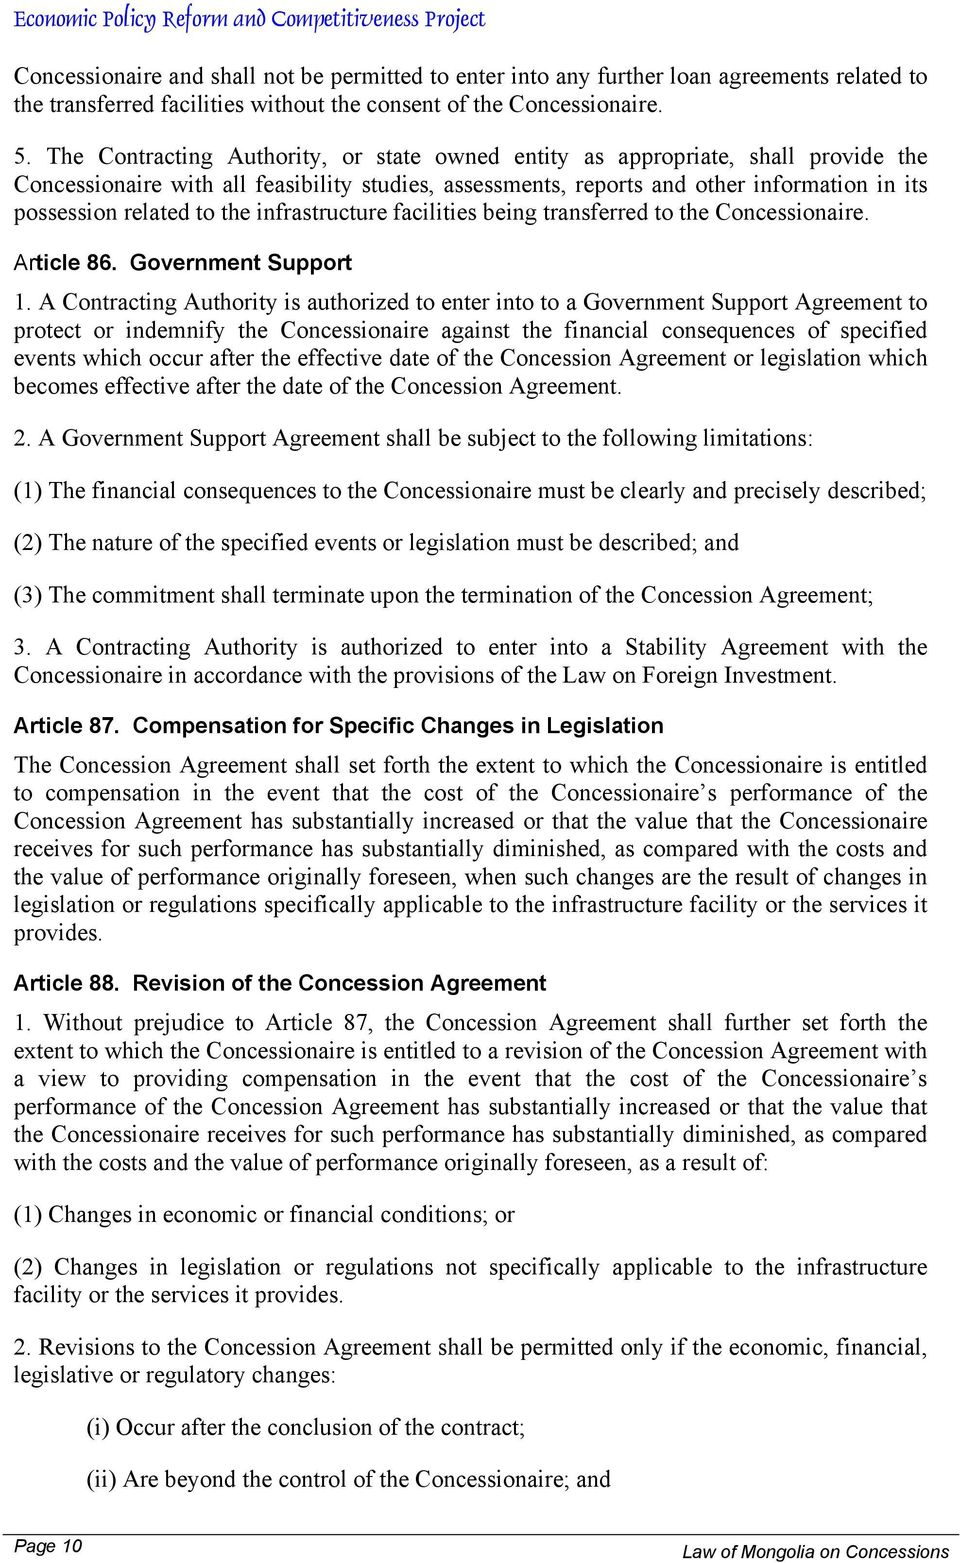 the infrastructure facilities being transferred to the Concessionaire. Article 86. Government Support 1.